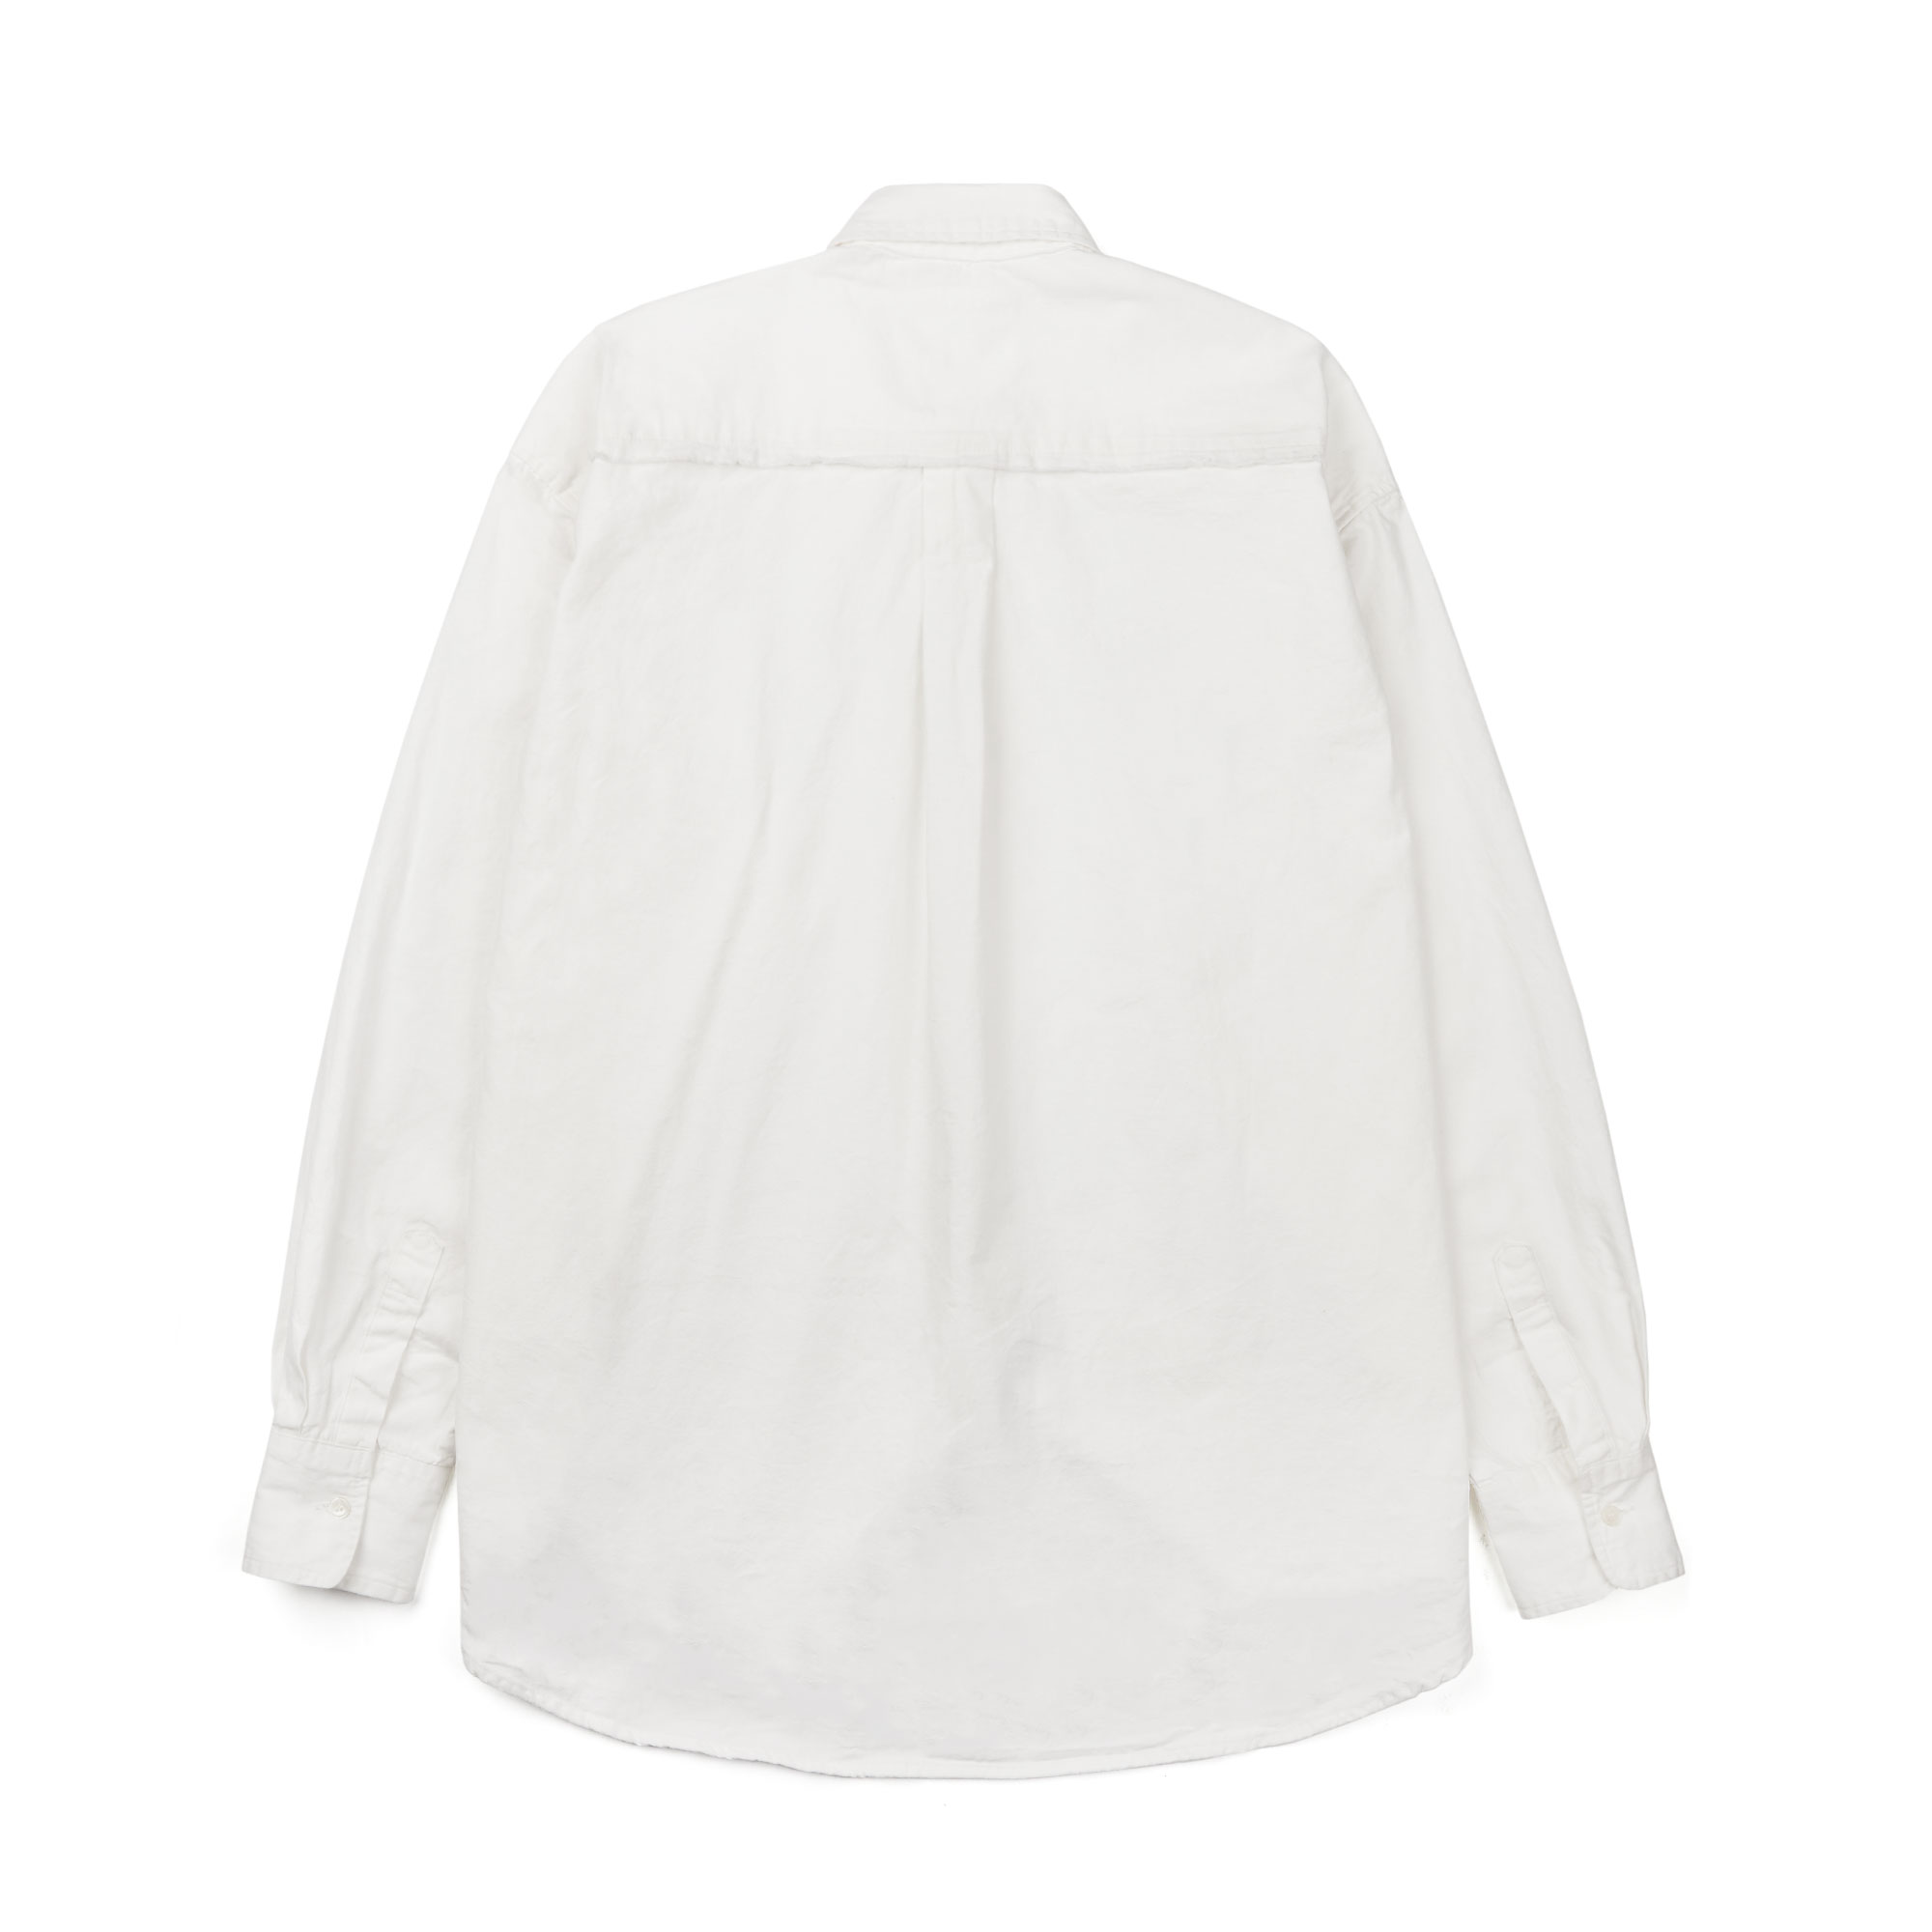 slant logo oxford shirt / ivory